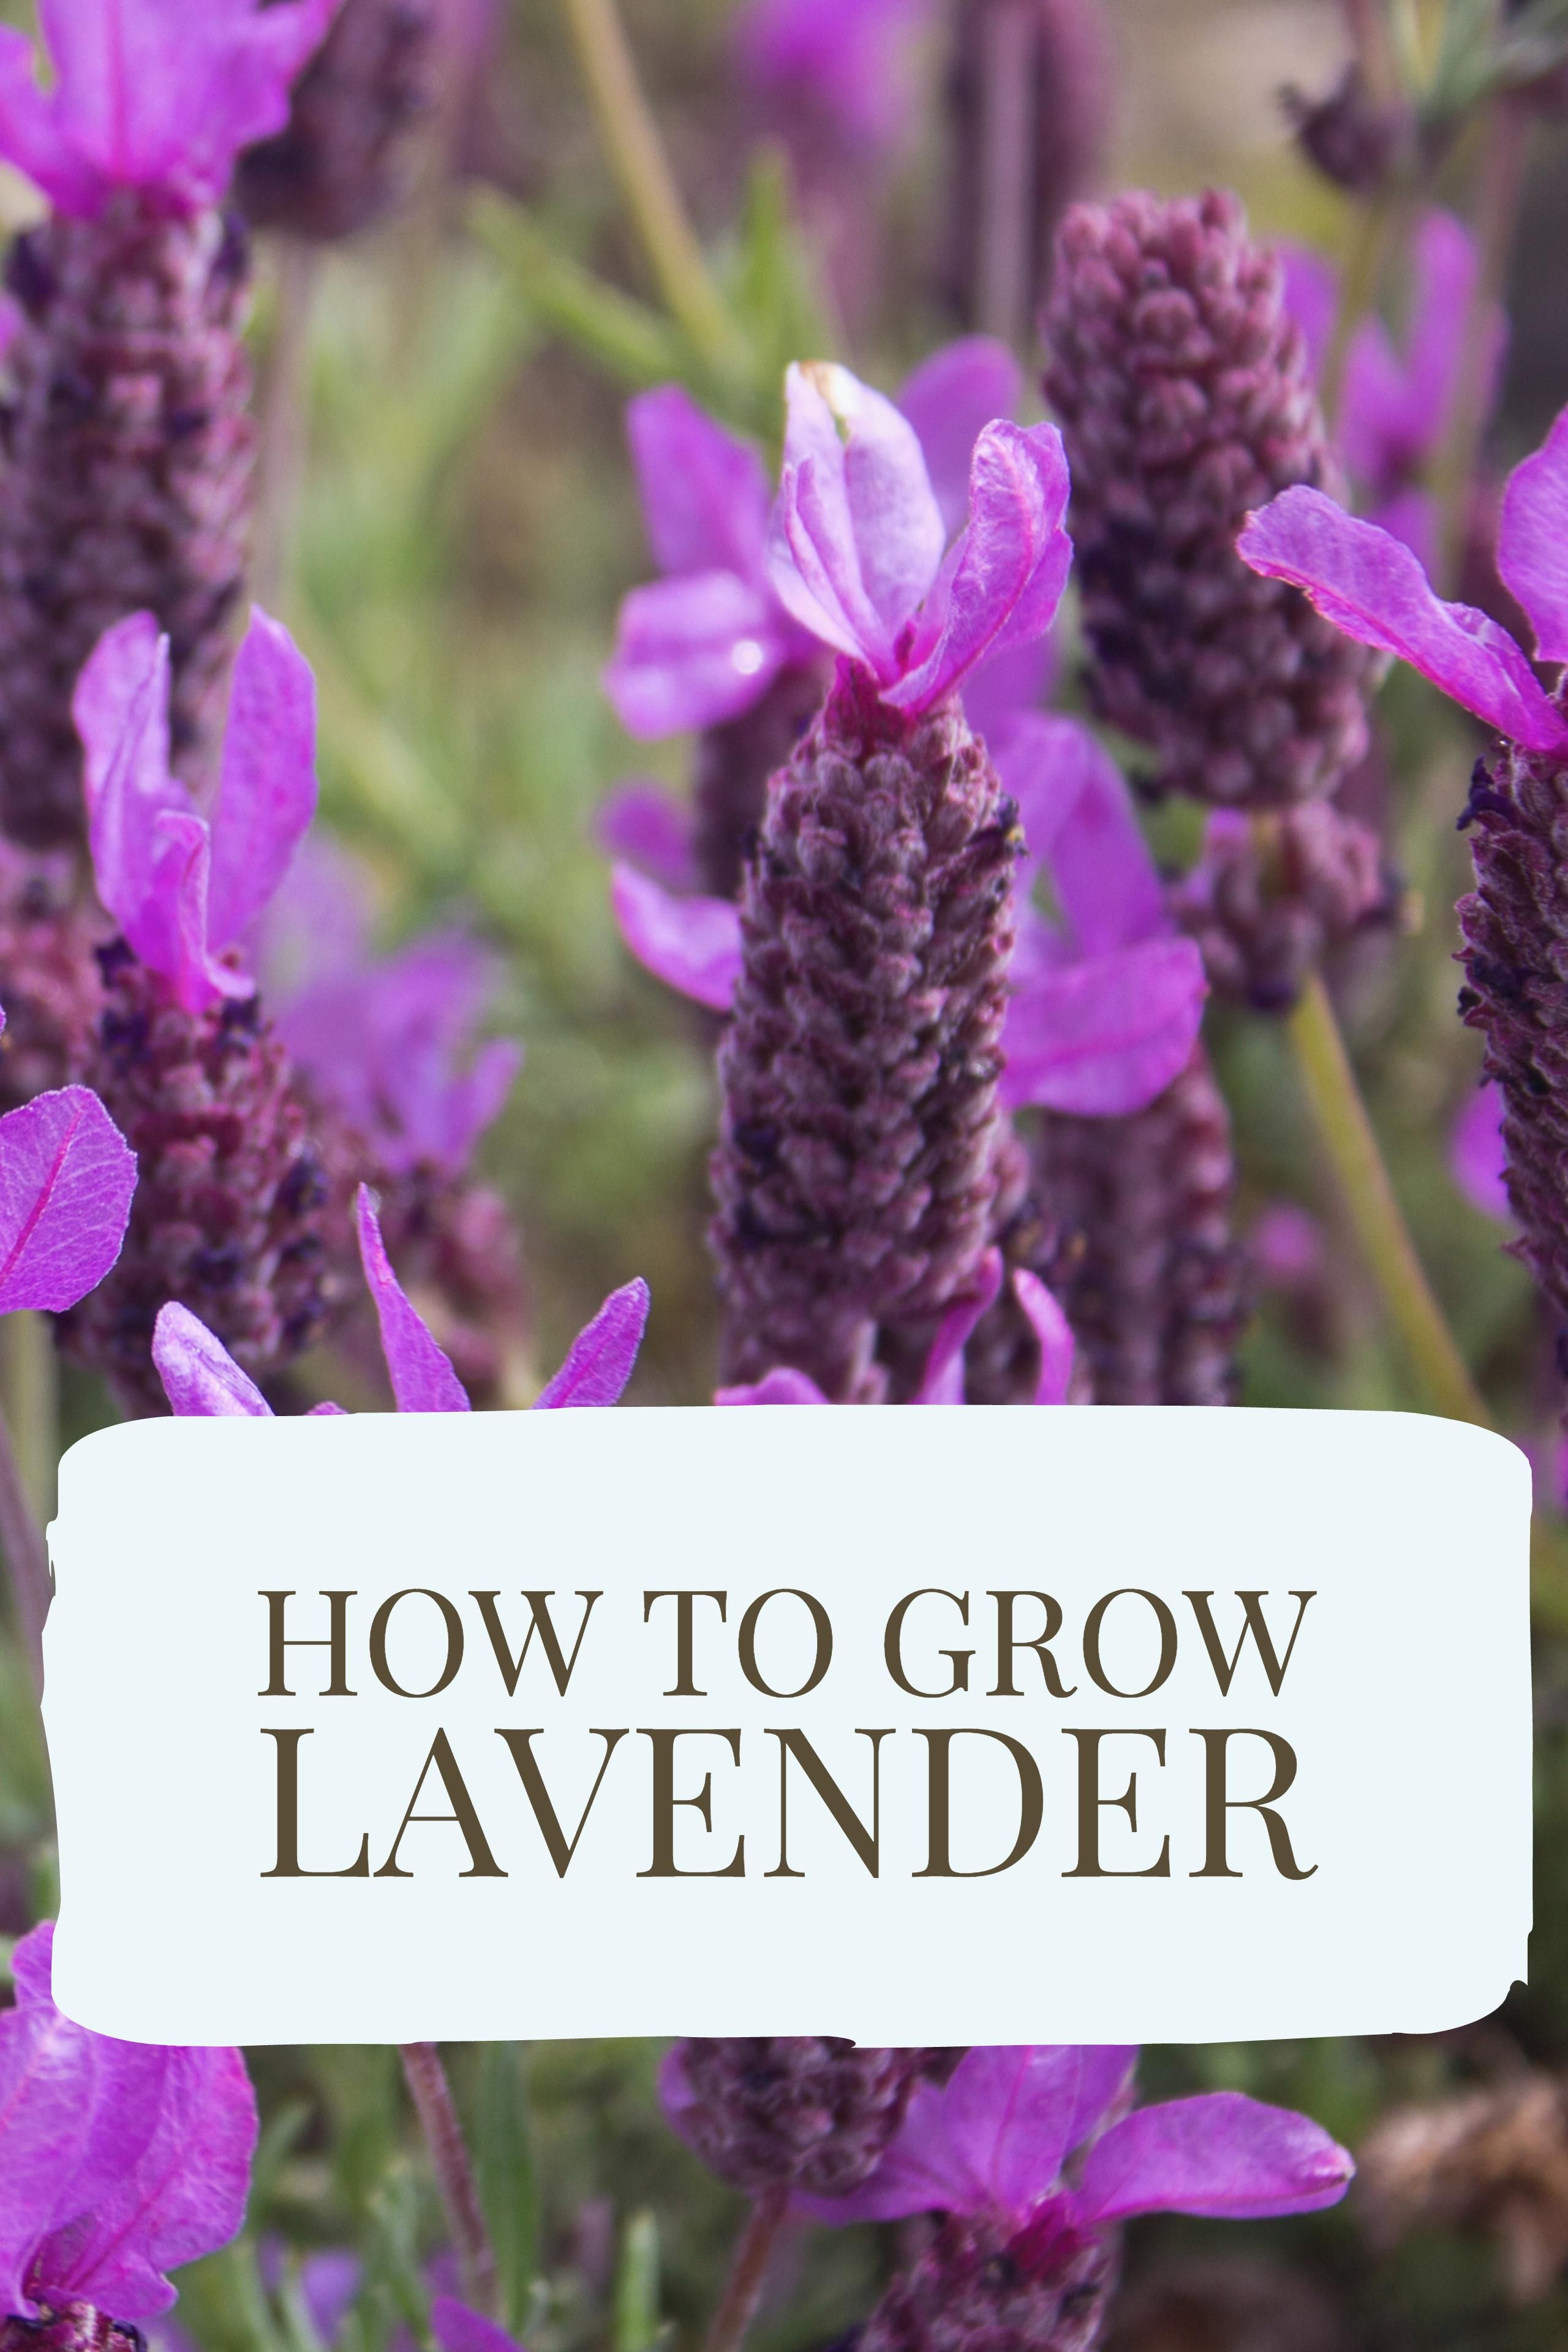 How to Grow Lavender | Lavender seeds, Lavender and Gardens